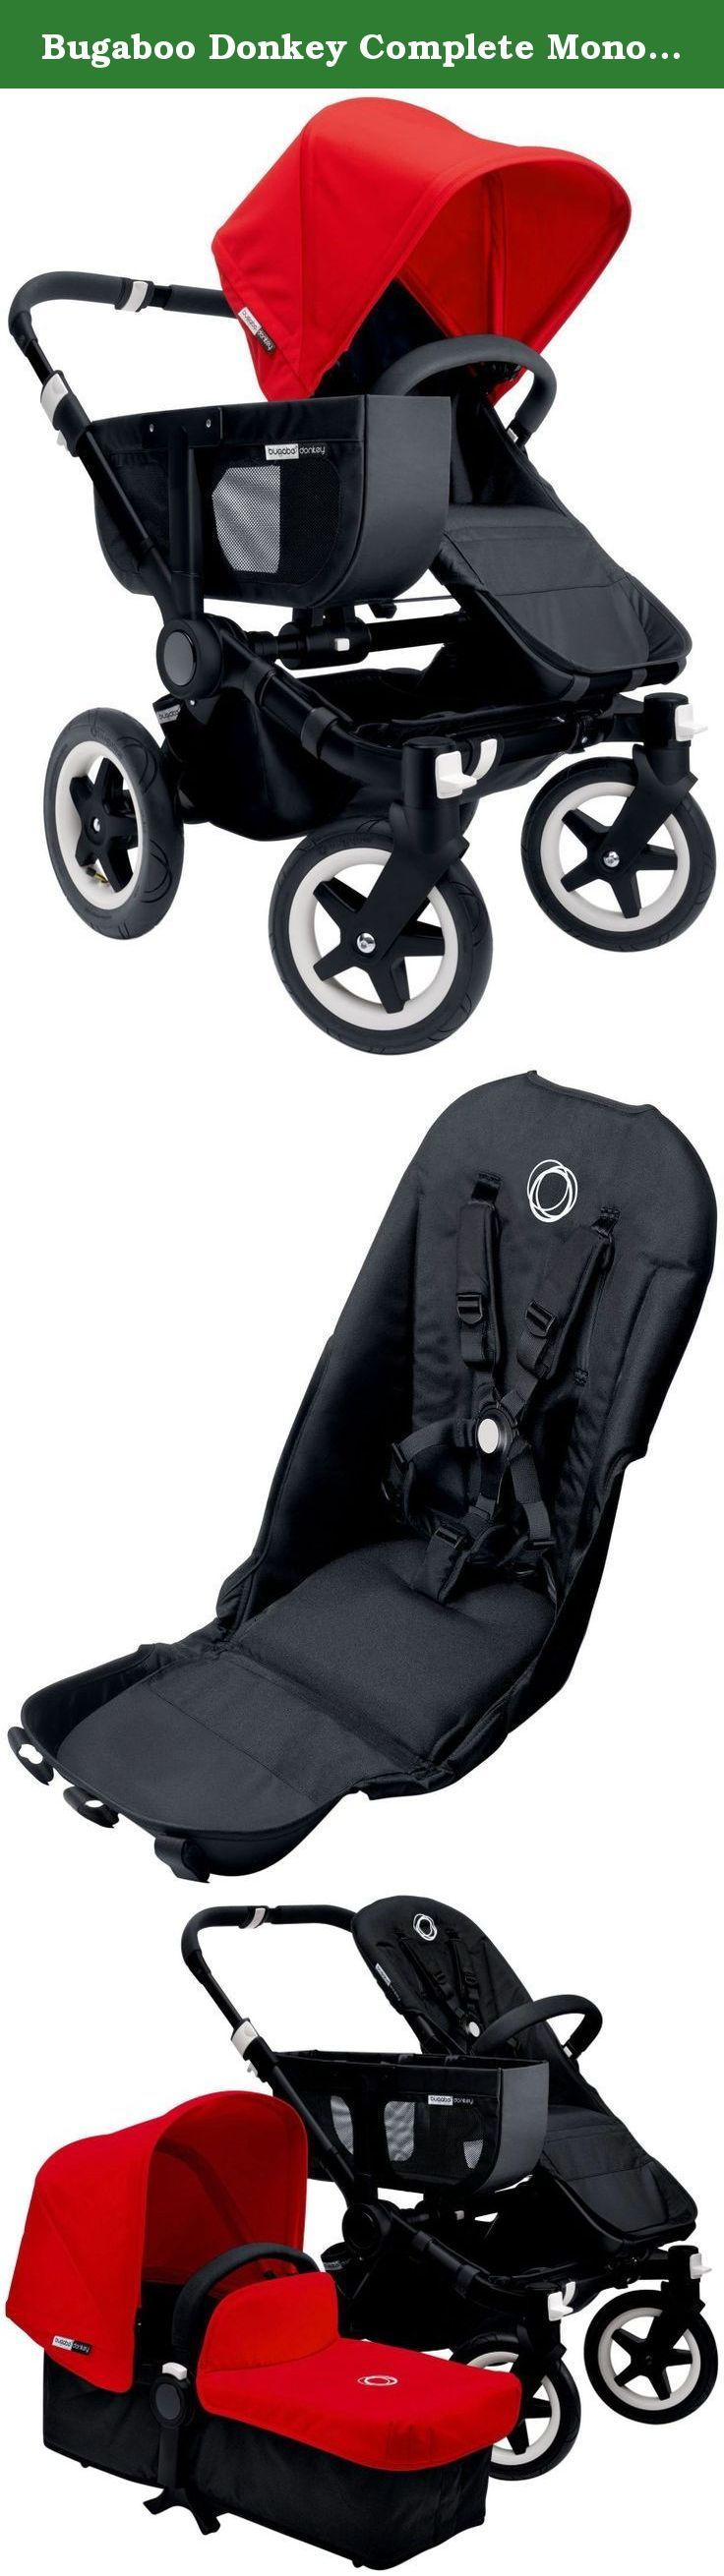 Pin on Standard, Strollers, Strollers & Accessories, Baby